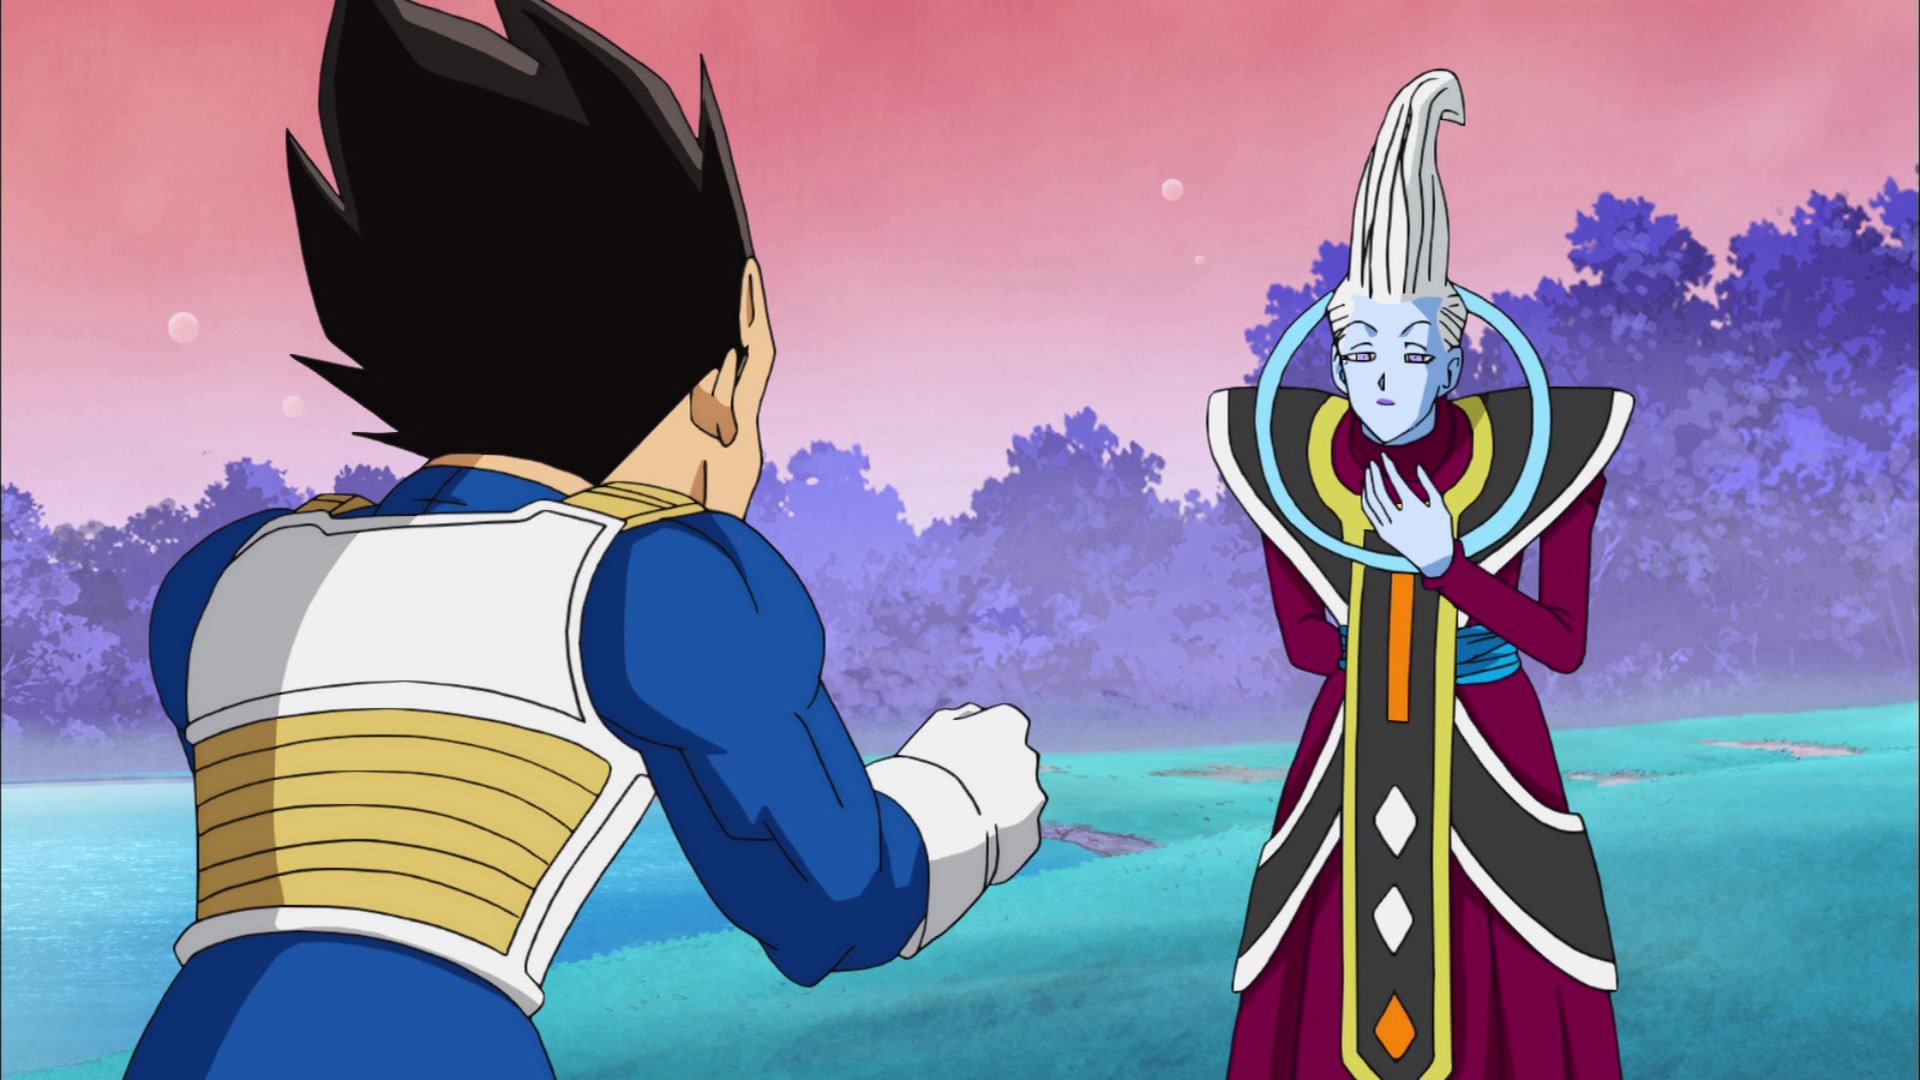 Dragon Ball Super Episode 71 The Death Of Goku The Guaranteed